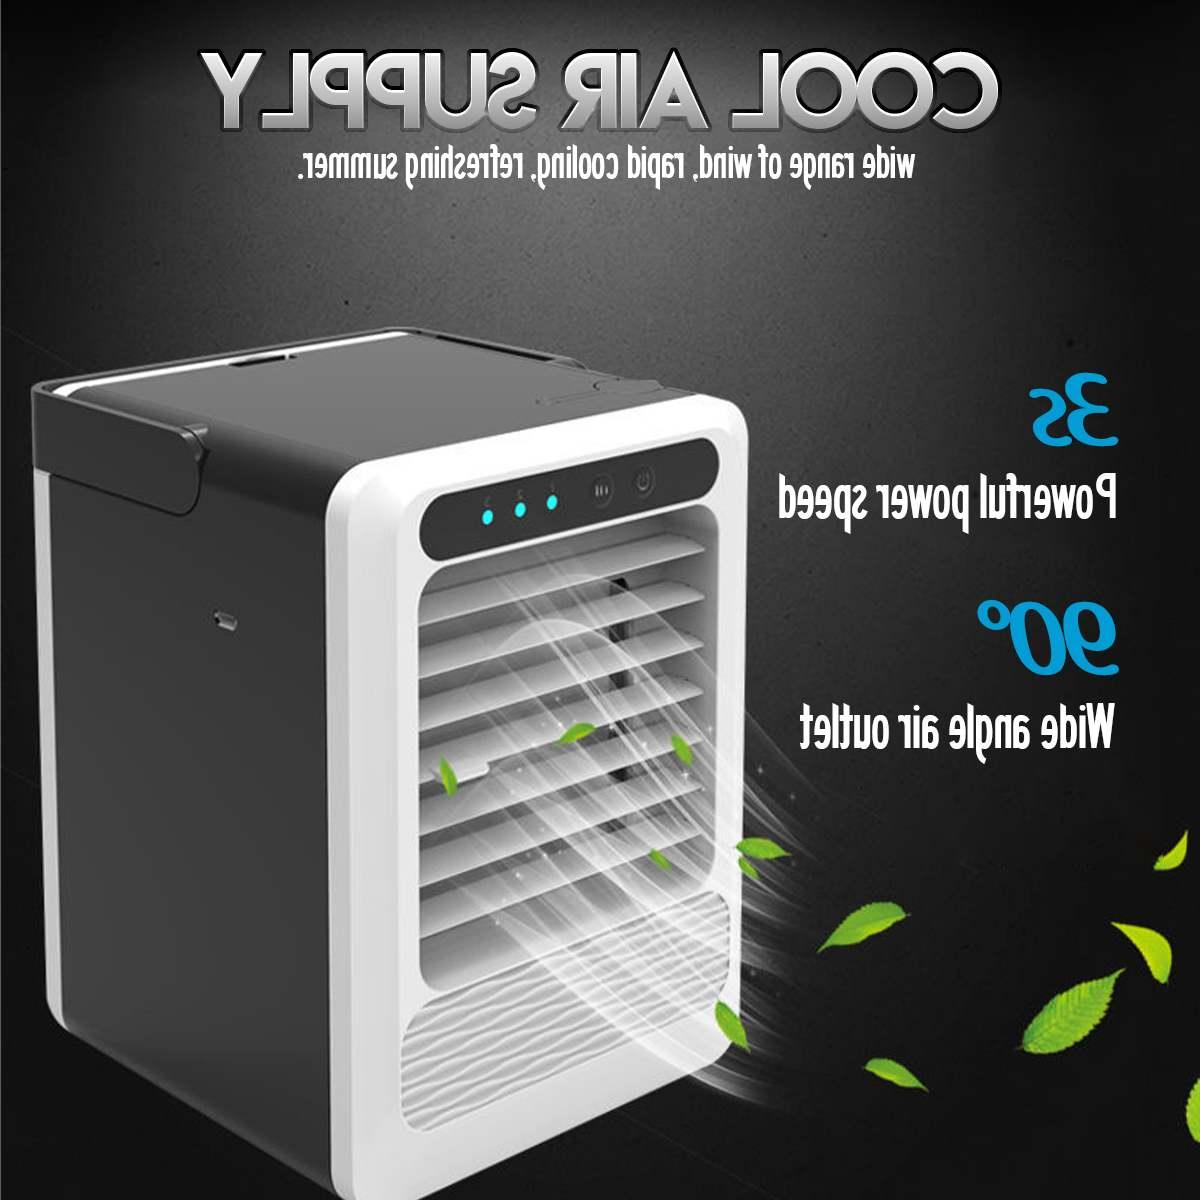 Portable <font><b>Conditioner</b></font> USB Cooling <font><b>Air</b></font> Conditioning Easy Way to 3